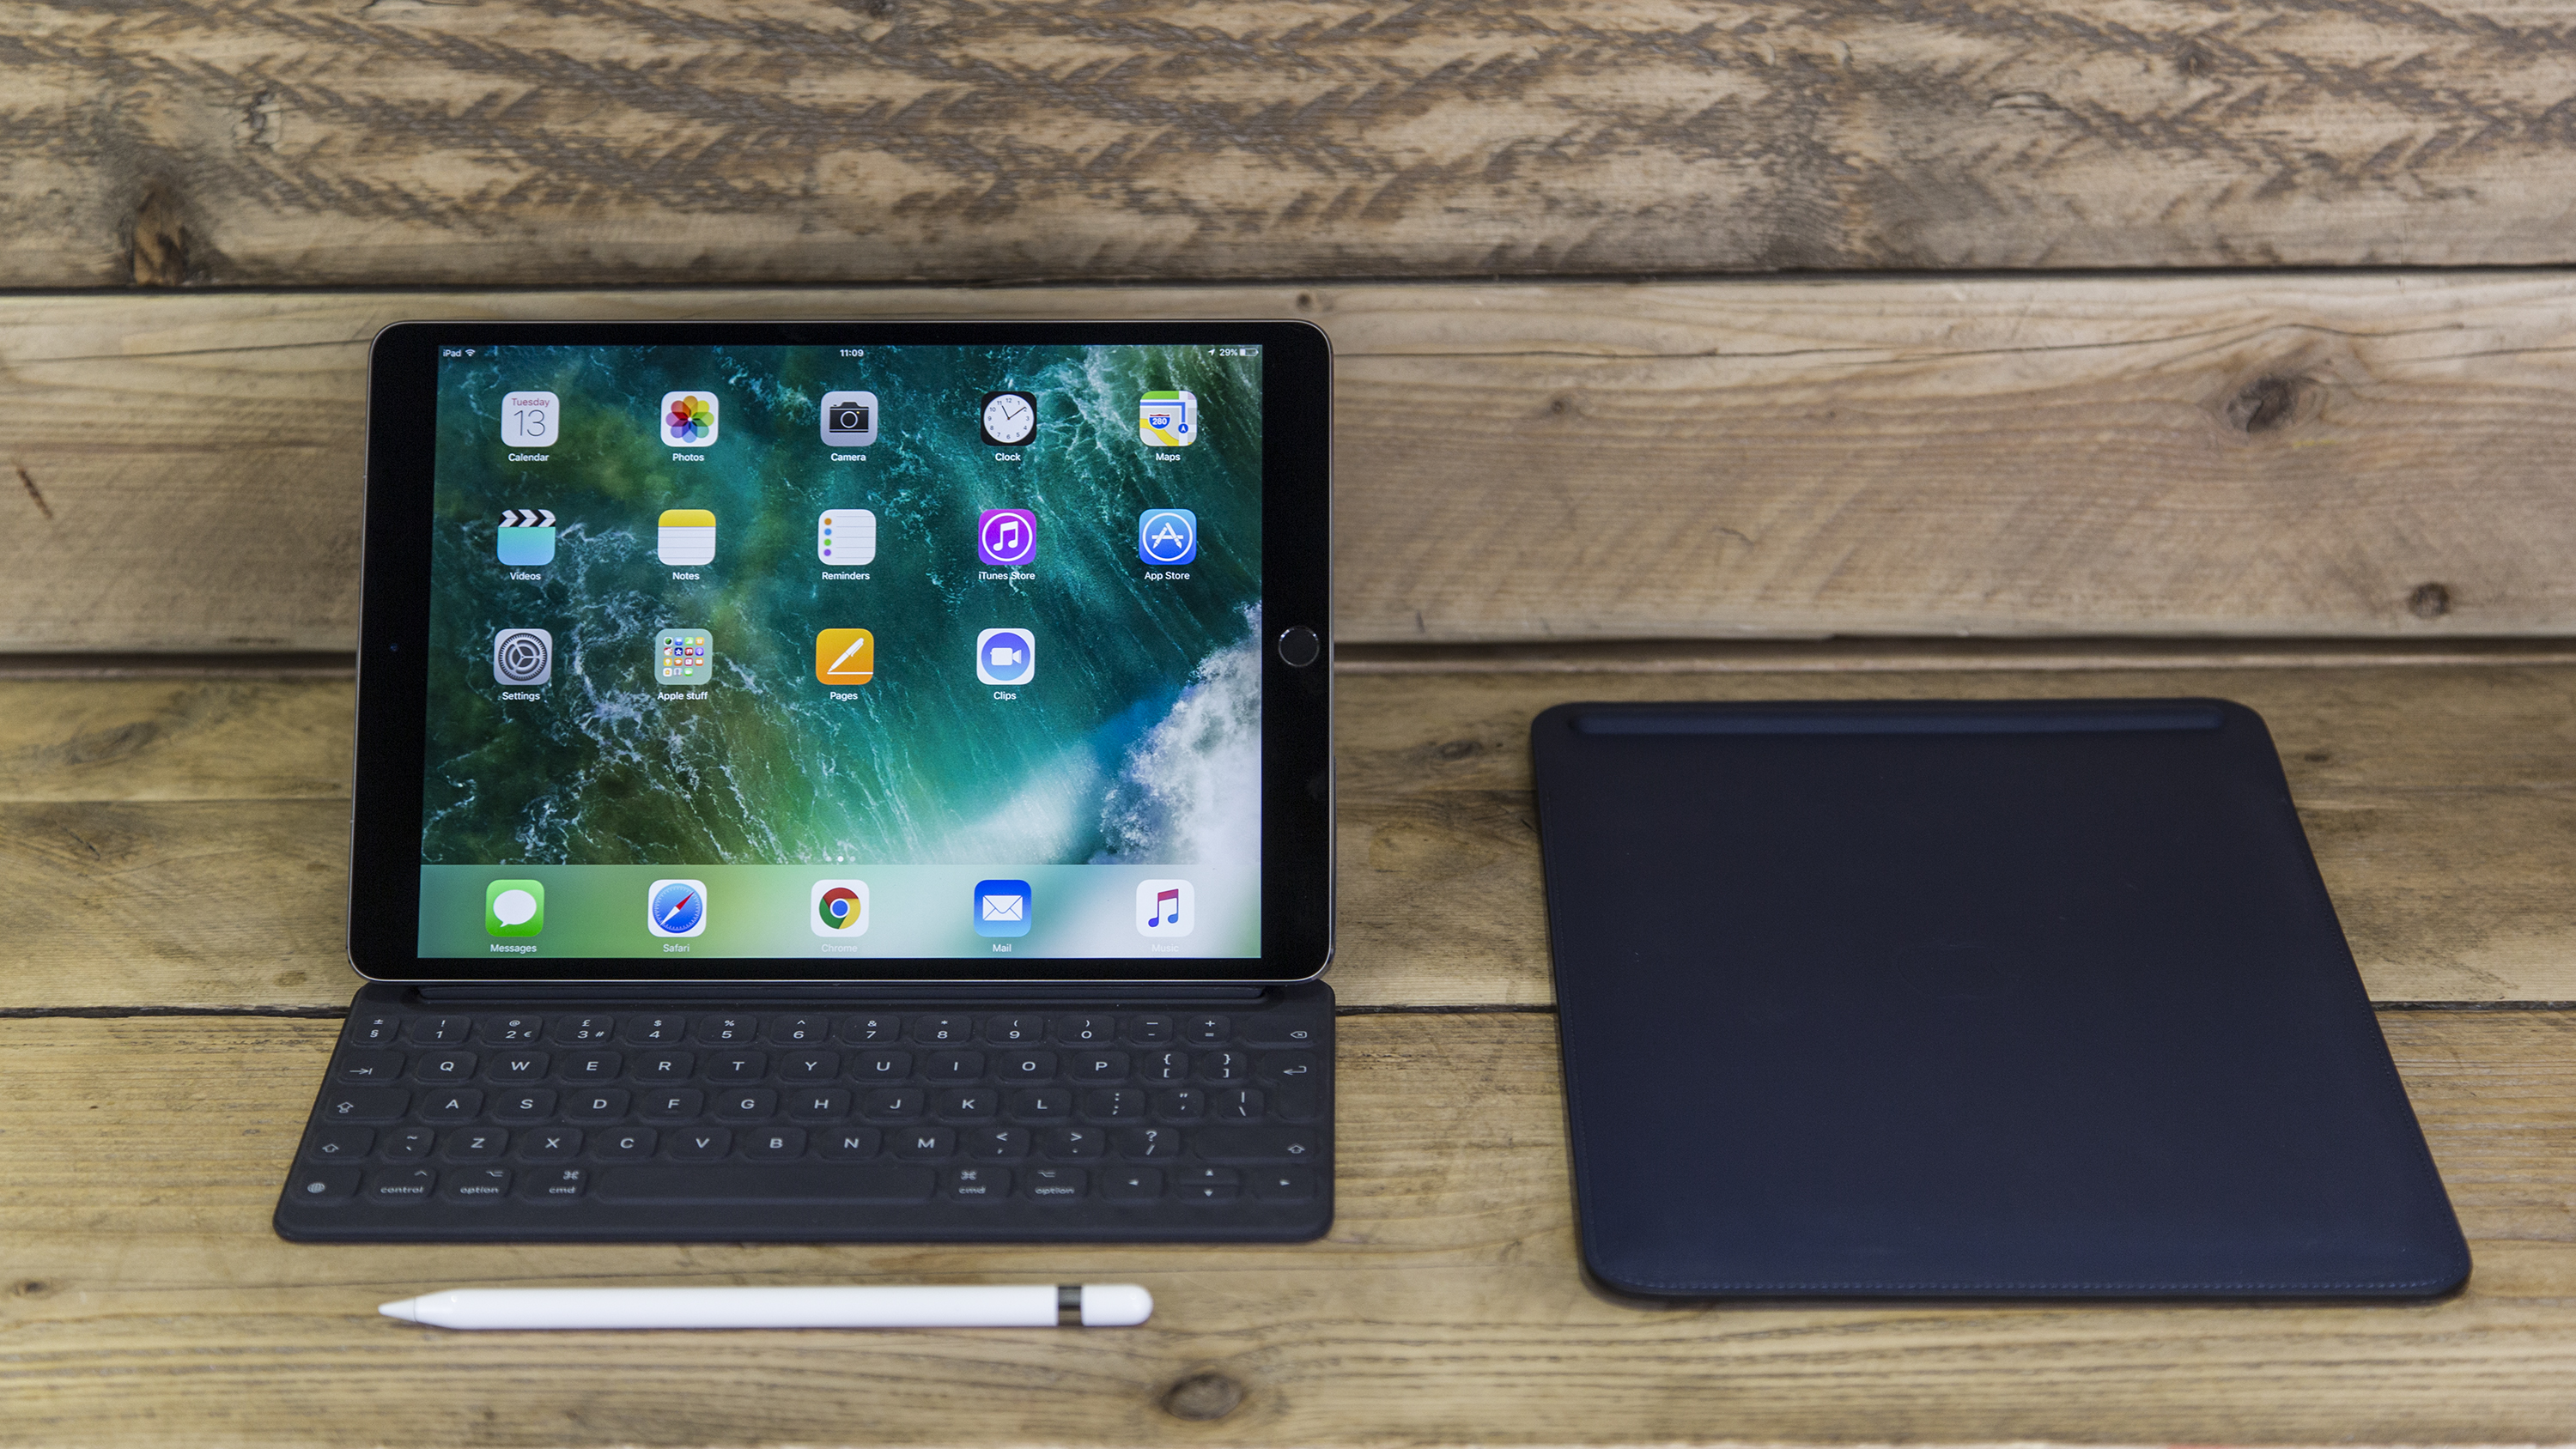 iPad Pro 10 5 (2017) review | TechRadar